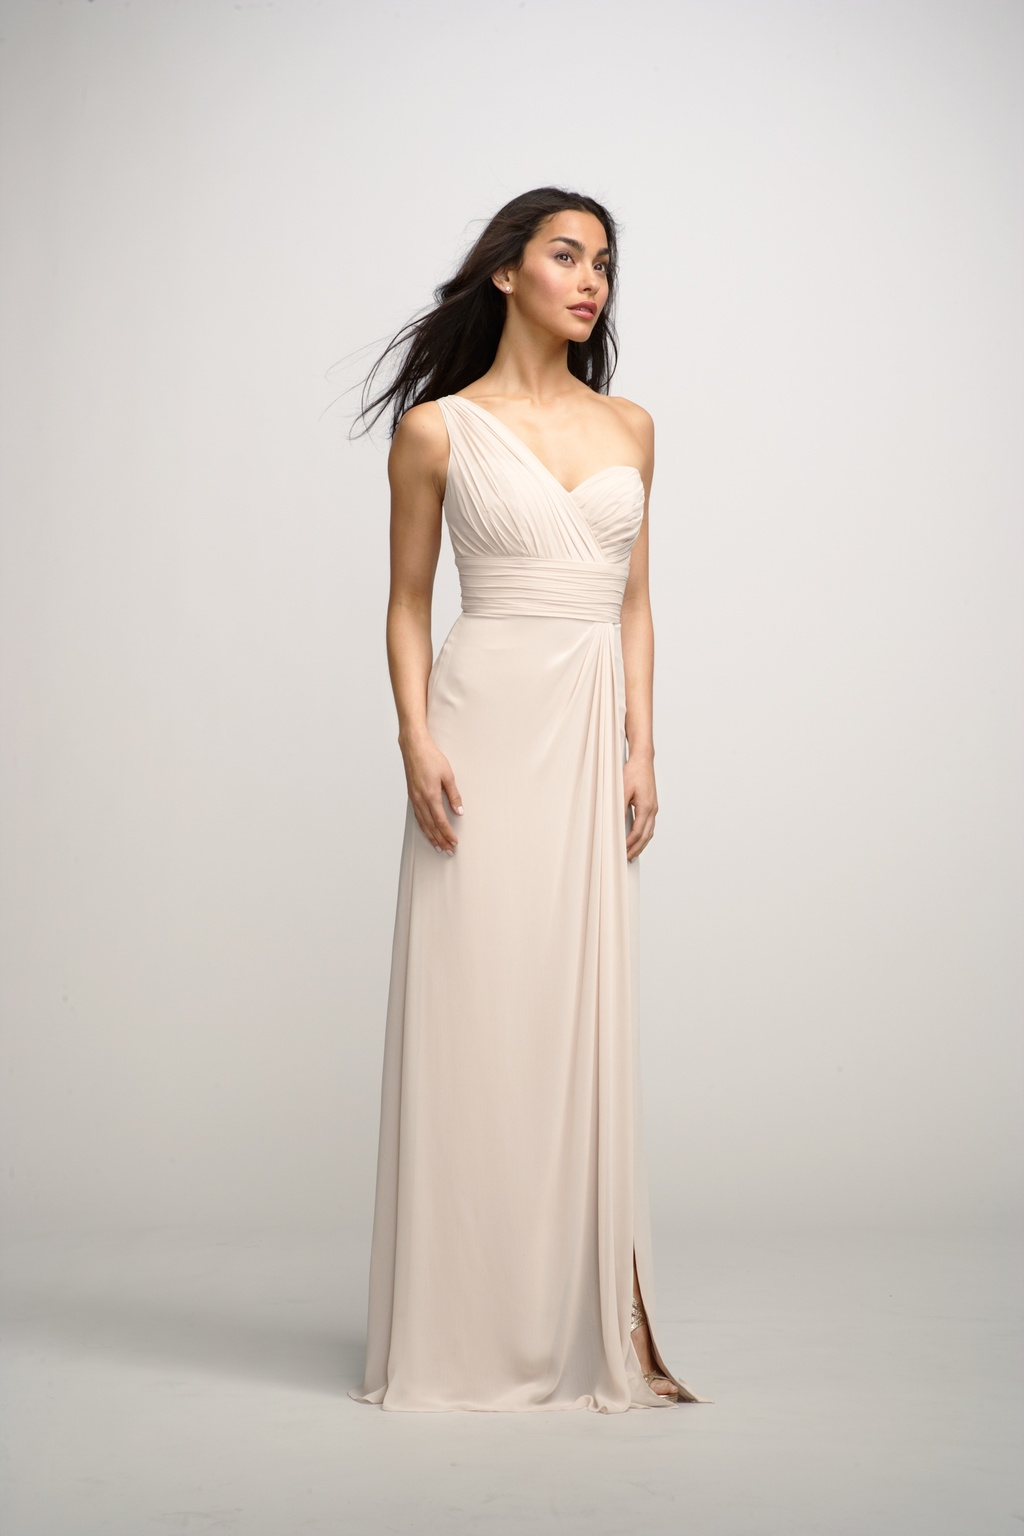 2012-bridesmaids-dresses-by-watters-bridesmaid-gown-one-shoulder-cream.full